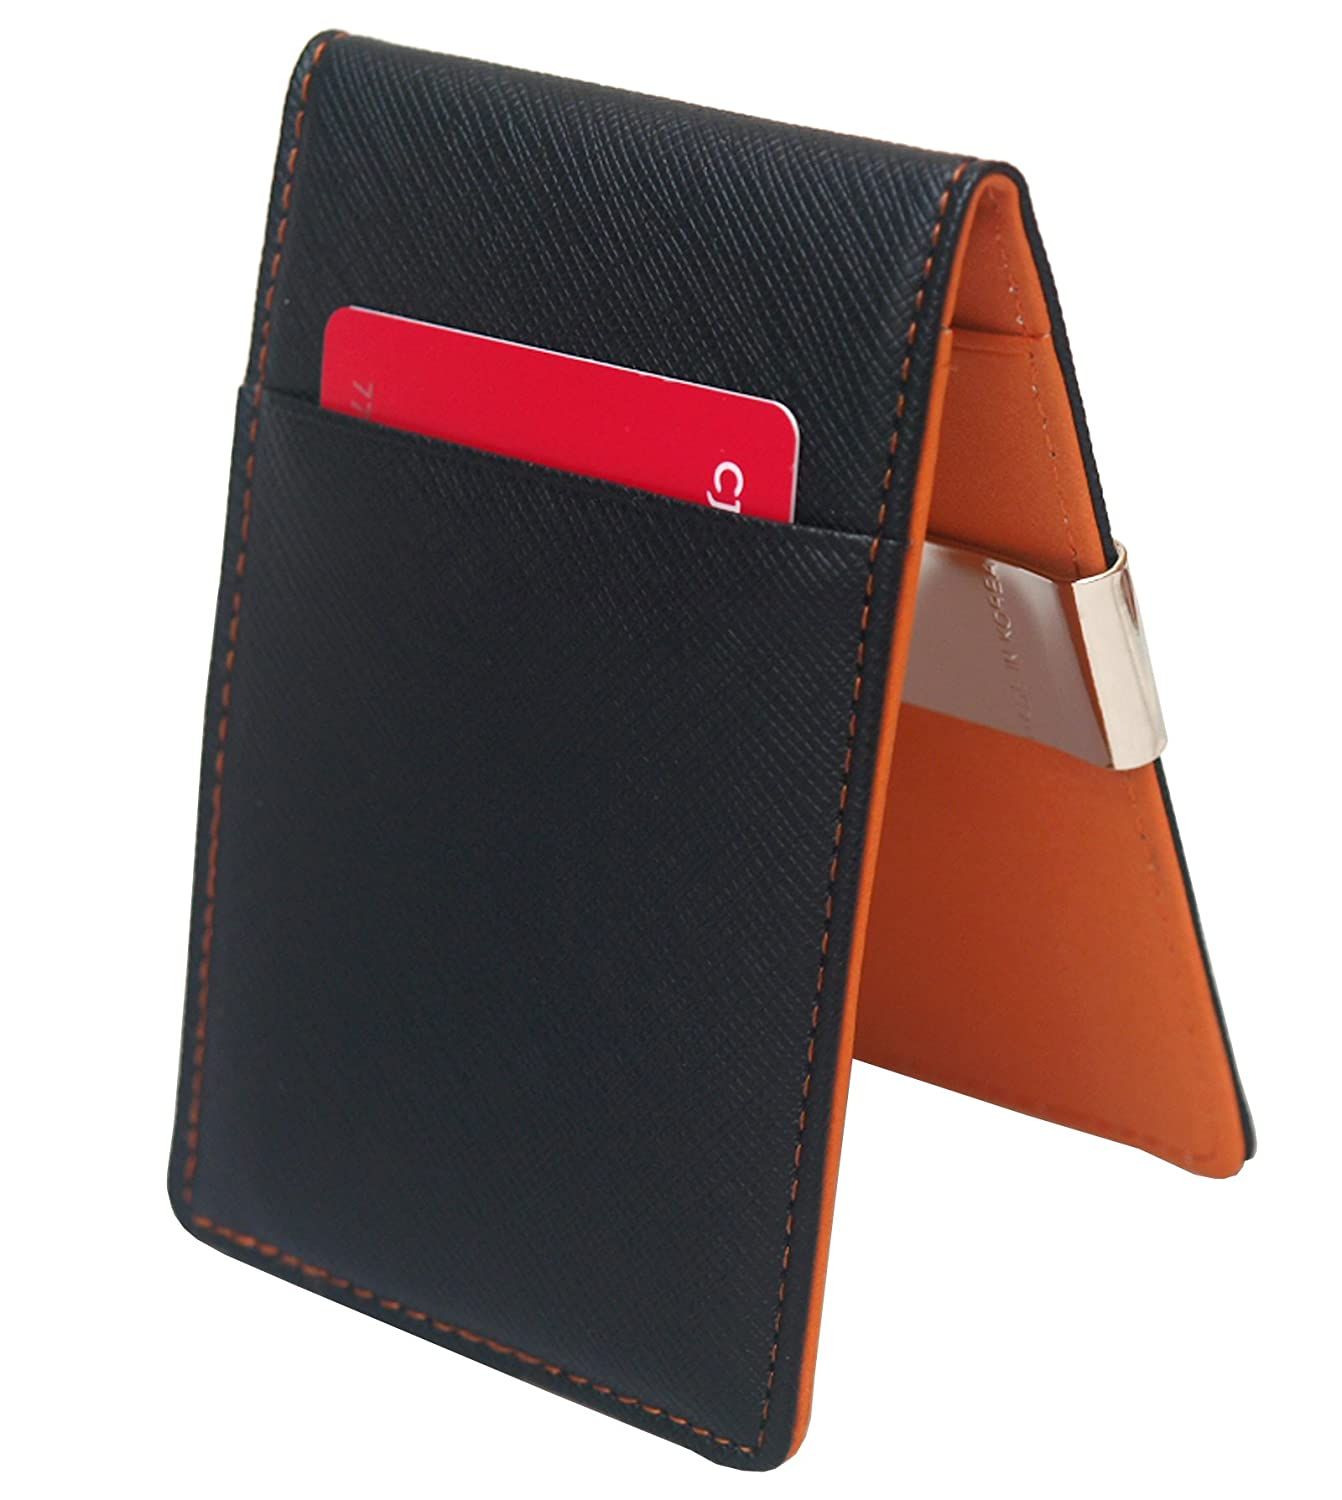 Amazon.com: New Faux Leather Metal Money Clip Mens Wallets Purse/ Black & Orange Colors: Clothing